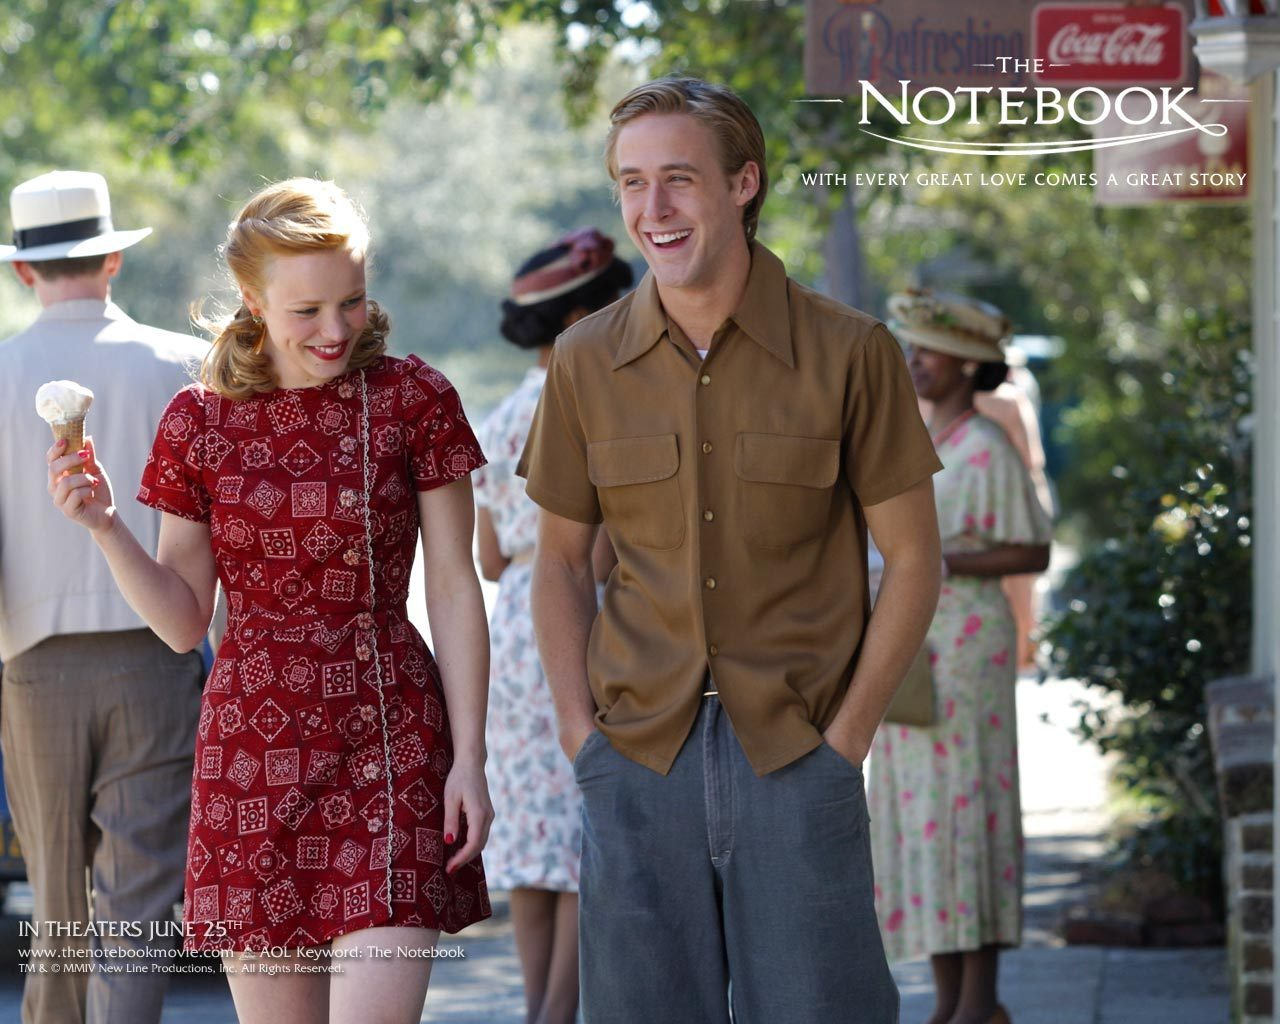 The Notebook vintage style: Ryan Gosling and Rachel McAdams